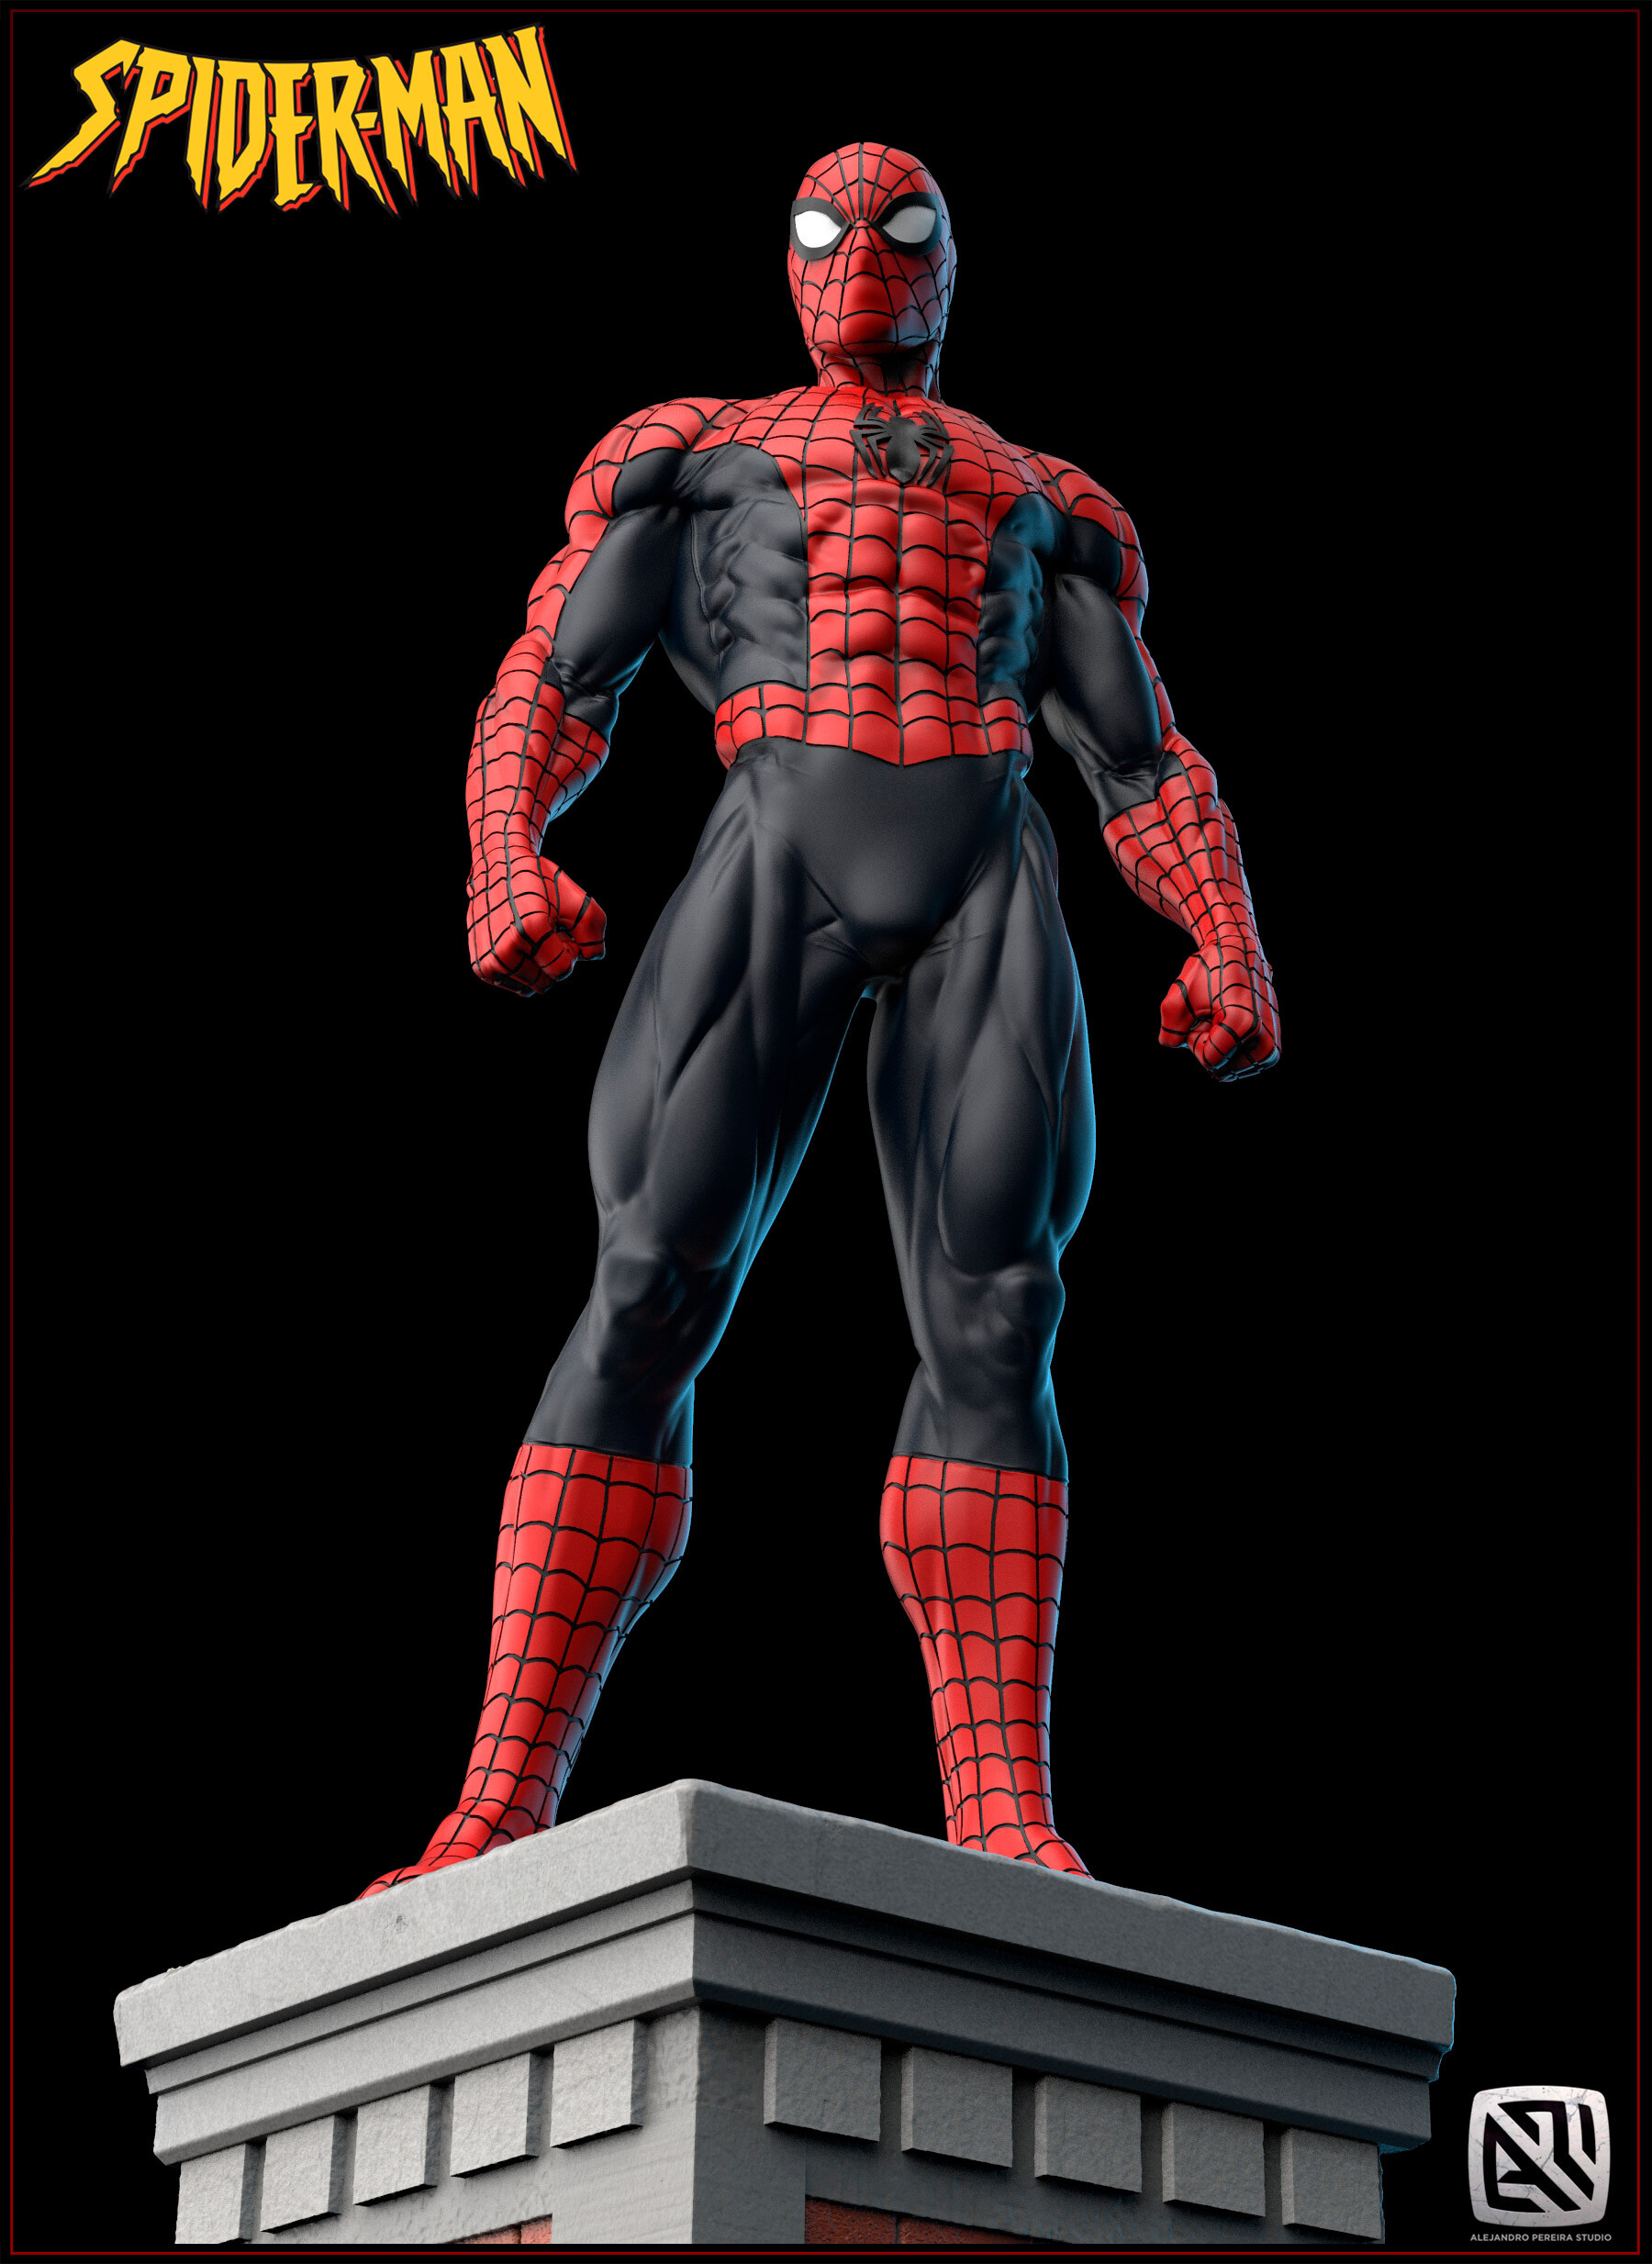 Alejandro pereira spidey render color 014